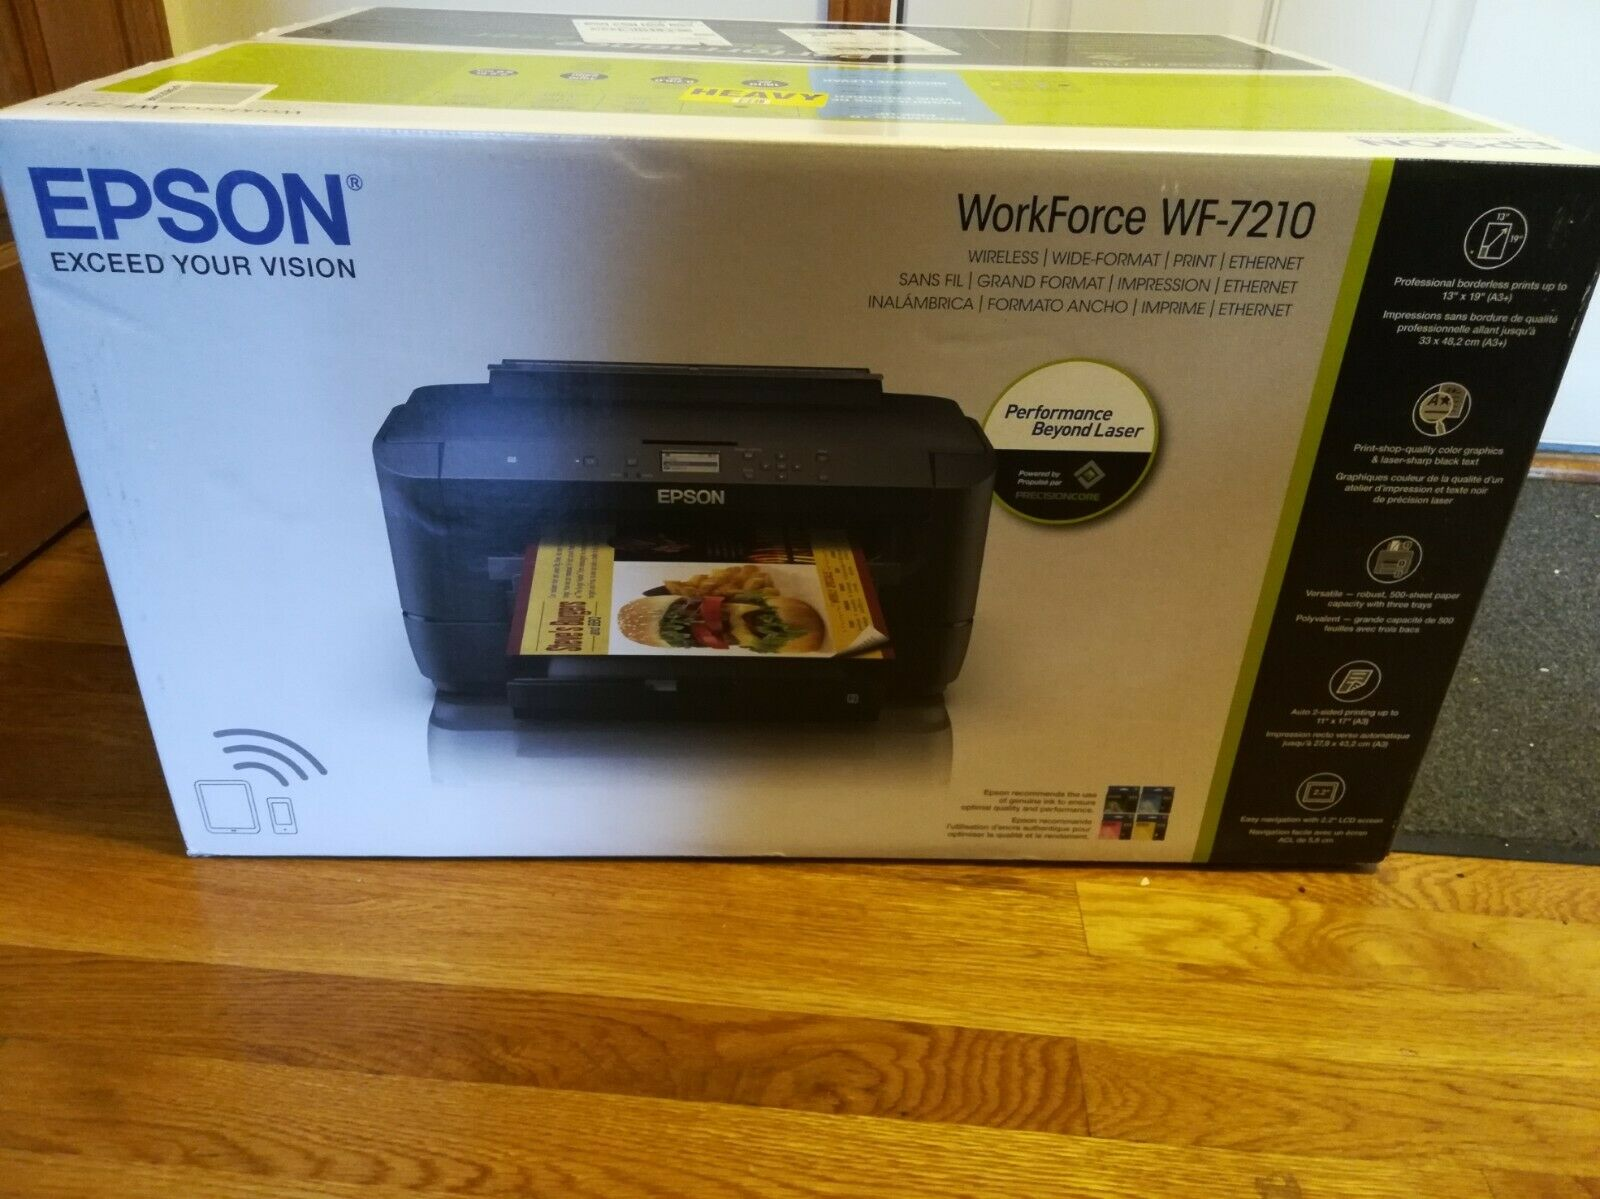 Brand New Epson WorkForce WF-7210 Wireless Wide Format Color Printer Sealed. Buy it now for 379.89